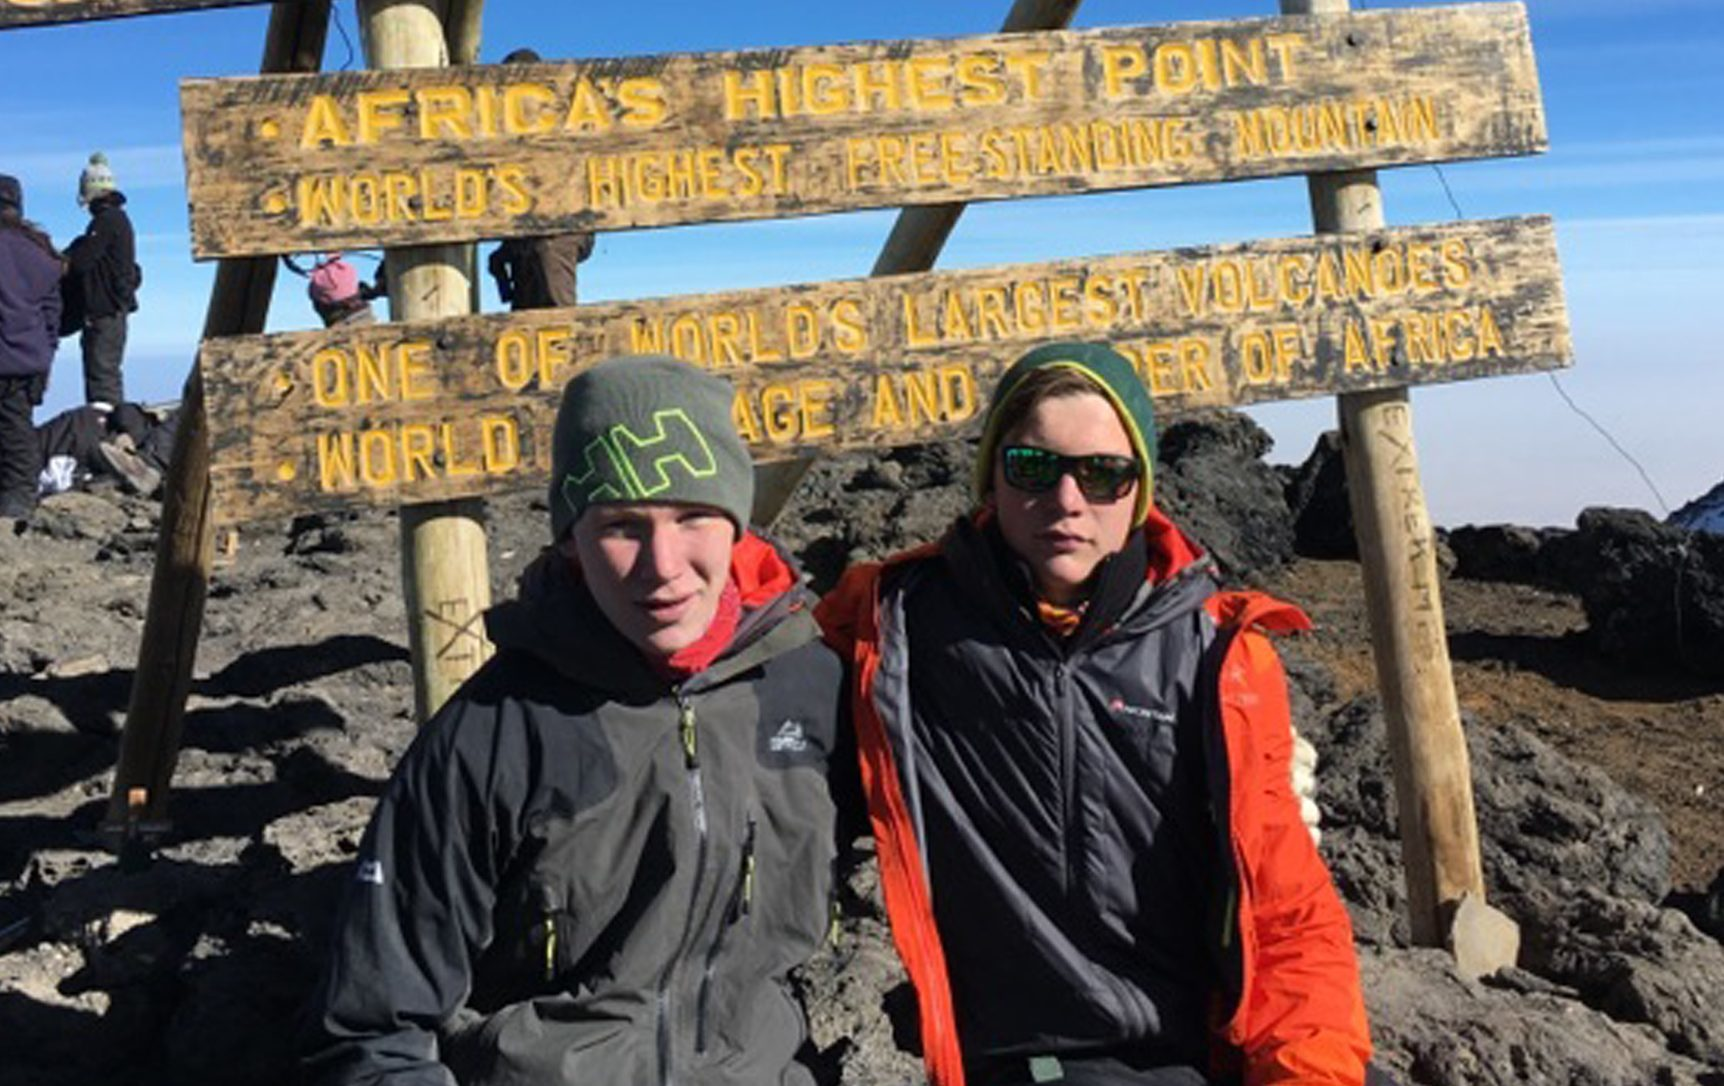 Brothers Harvey Dick-Reid (left), 17, and Archie Dick-Reid, 14, on top of Mount Kilimanjaro, which they climbed to raise money for PLan B charity, set up in memory of kayaker Dominic Jackson who died in February. (Archie Dick-Reid/PA Wire)